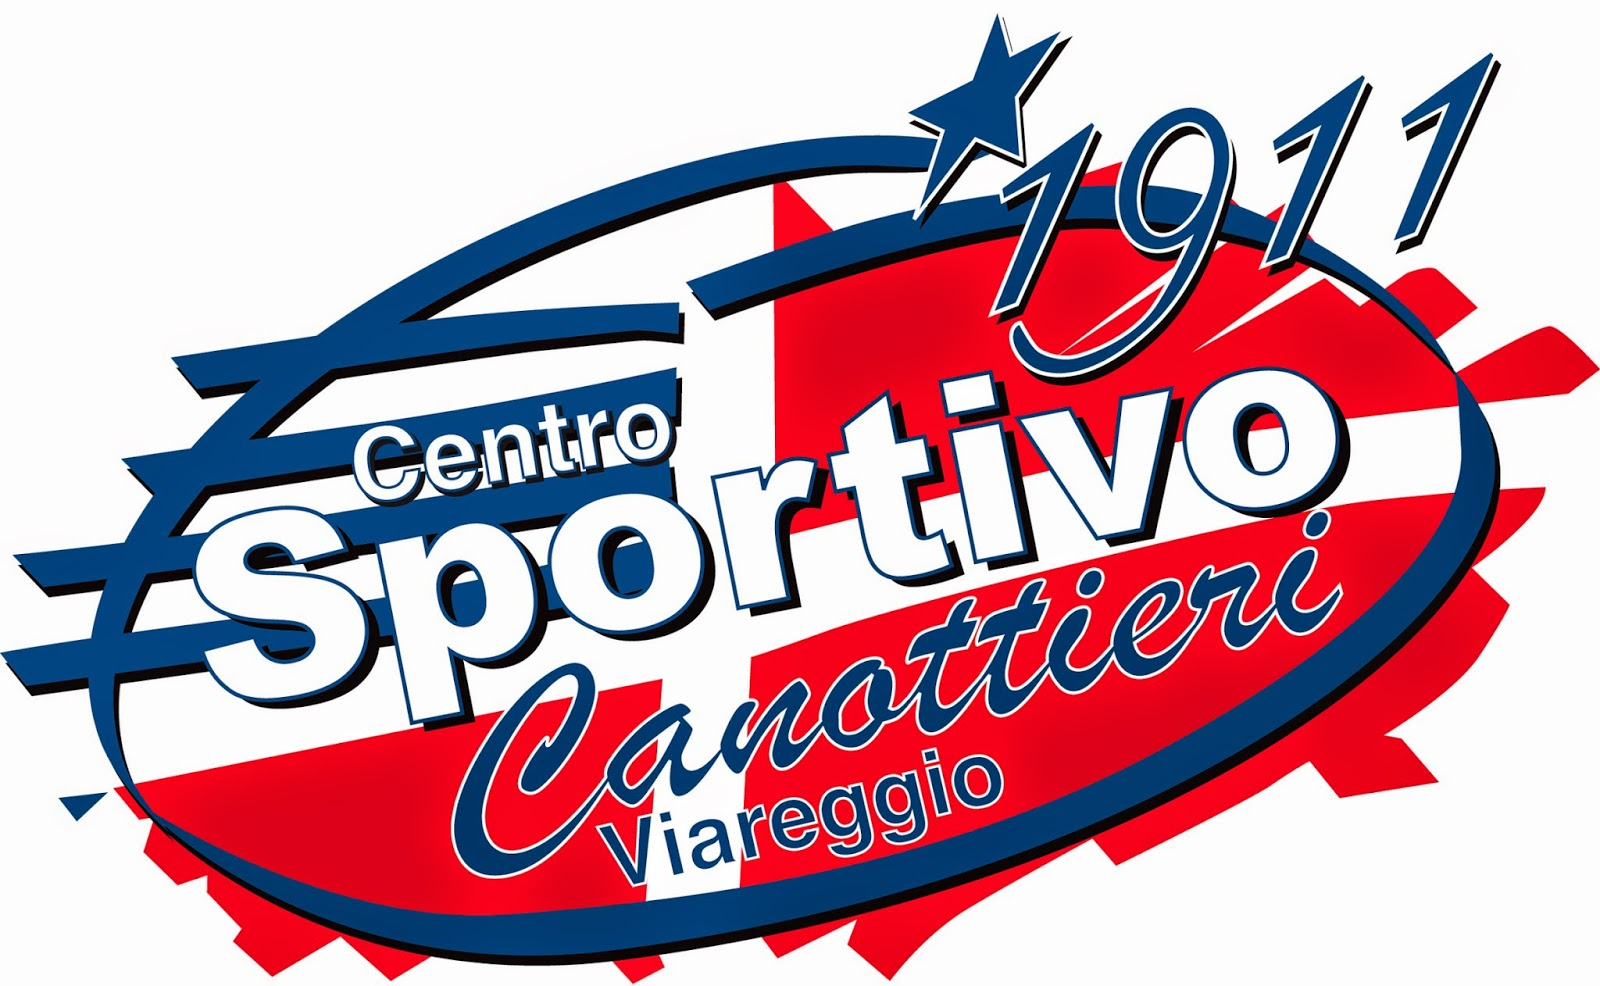 Rowing Sports Center Viareggio - photo